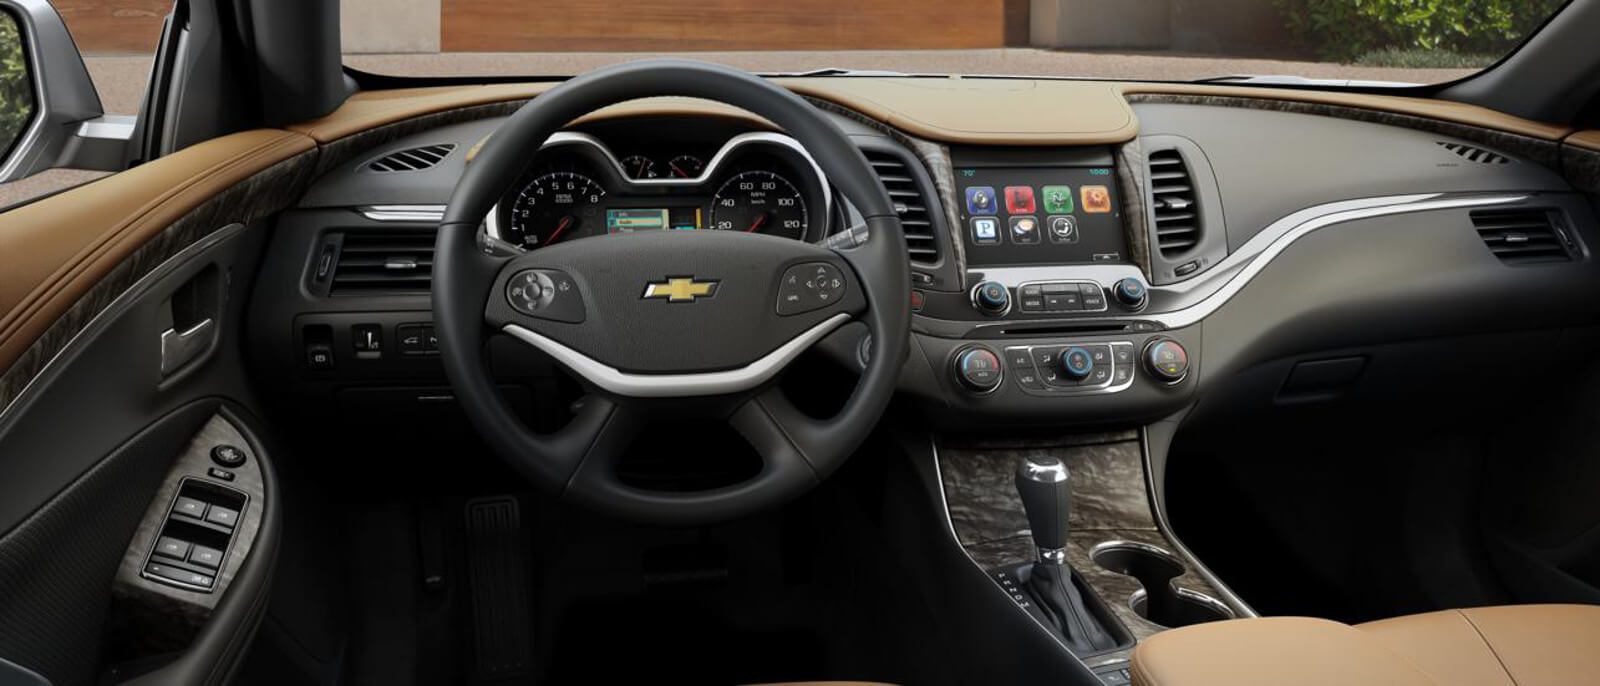 2015 chevrolet impala | sunrise chevrolet